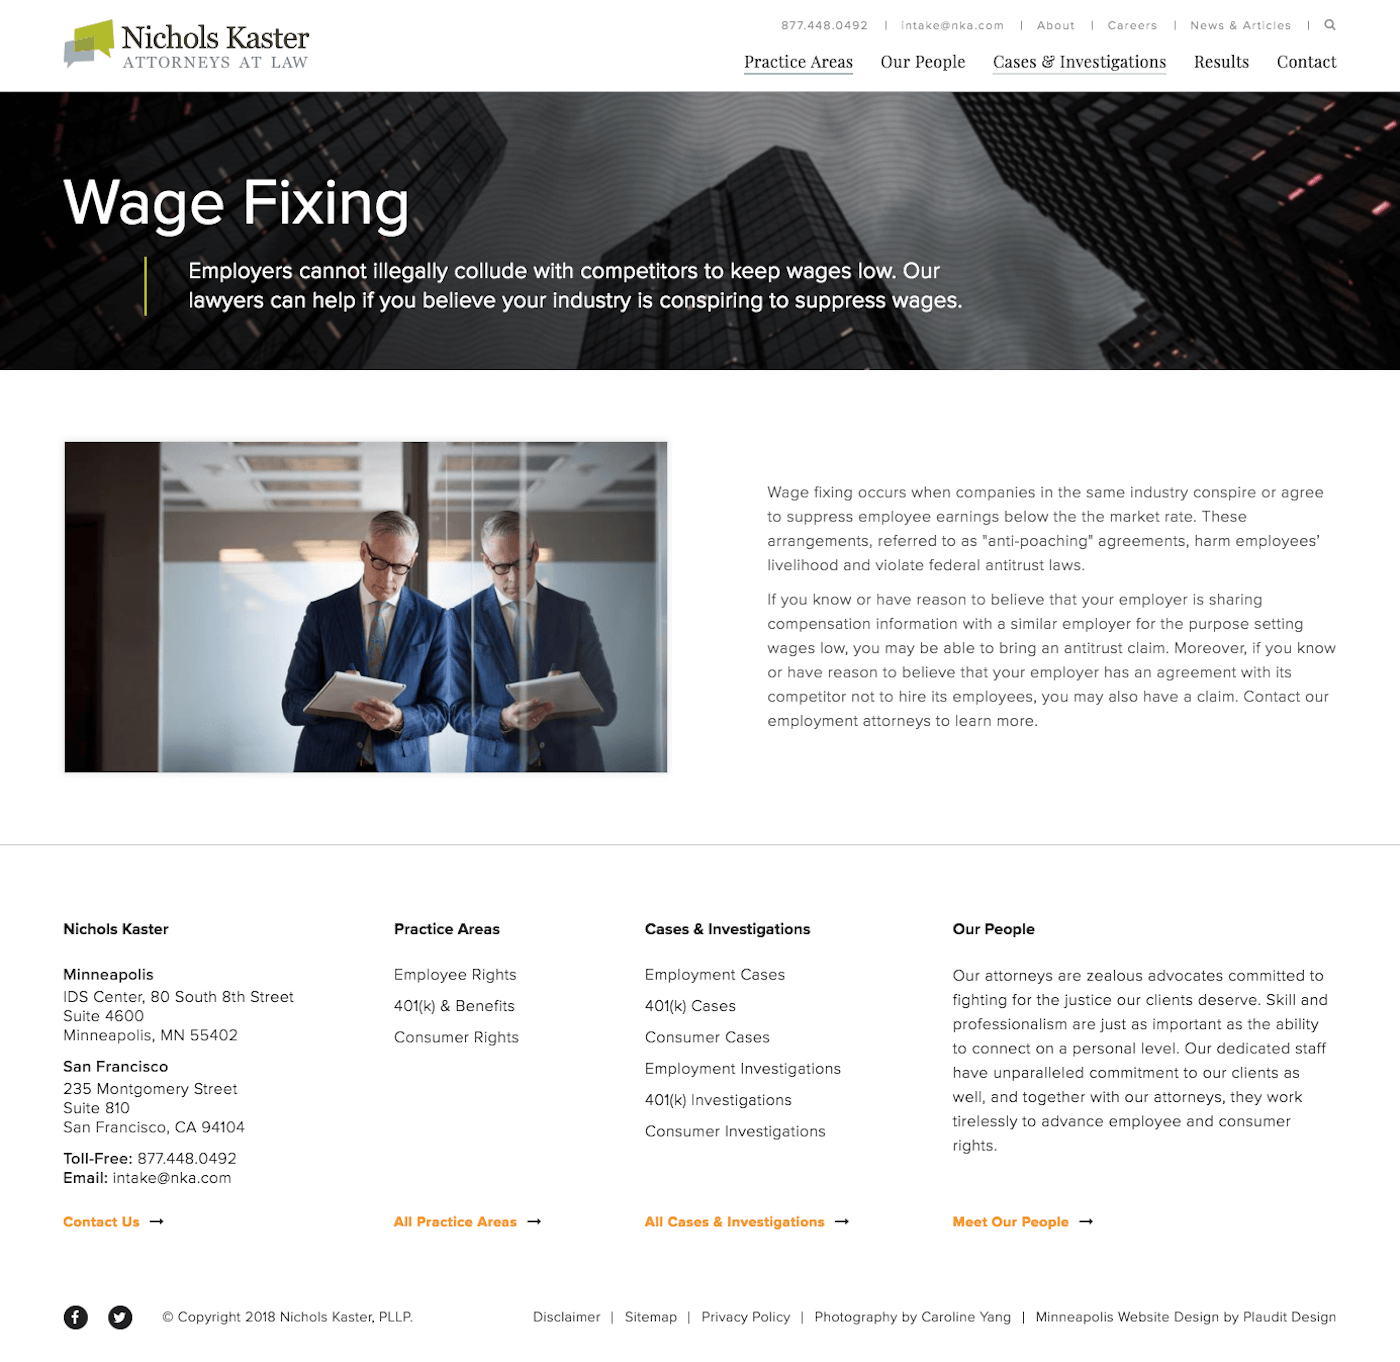 Nichols Kaster Web Design: Wage Fixing Practice Area